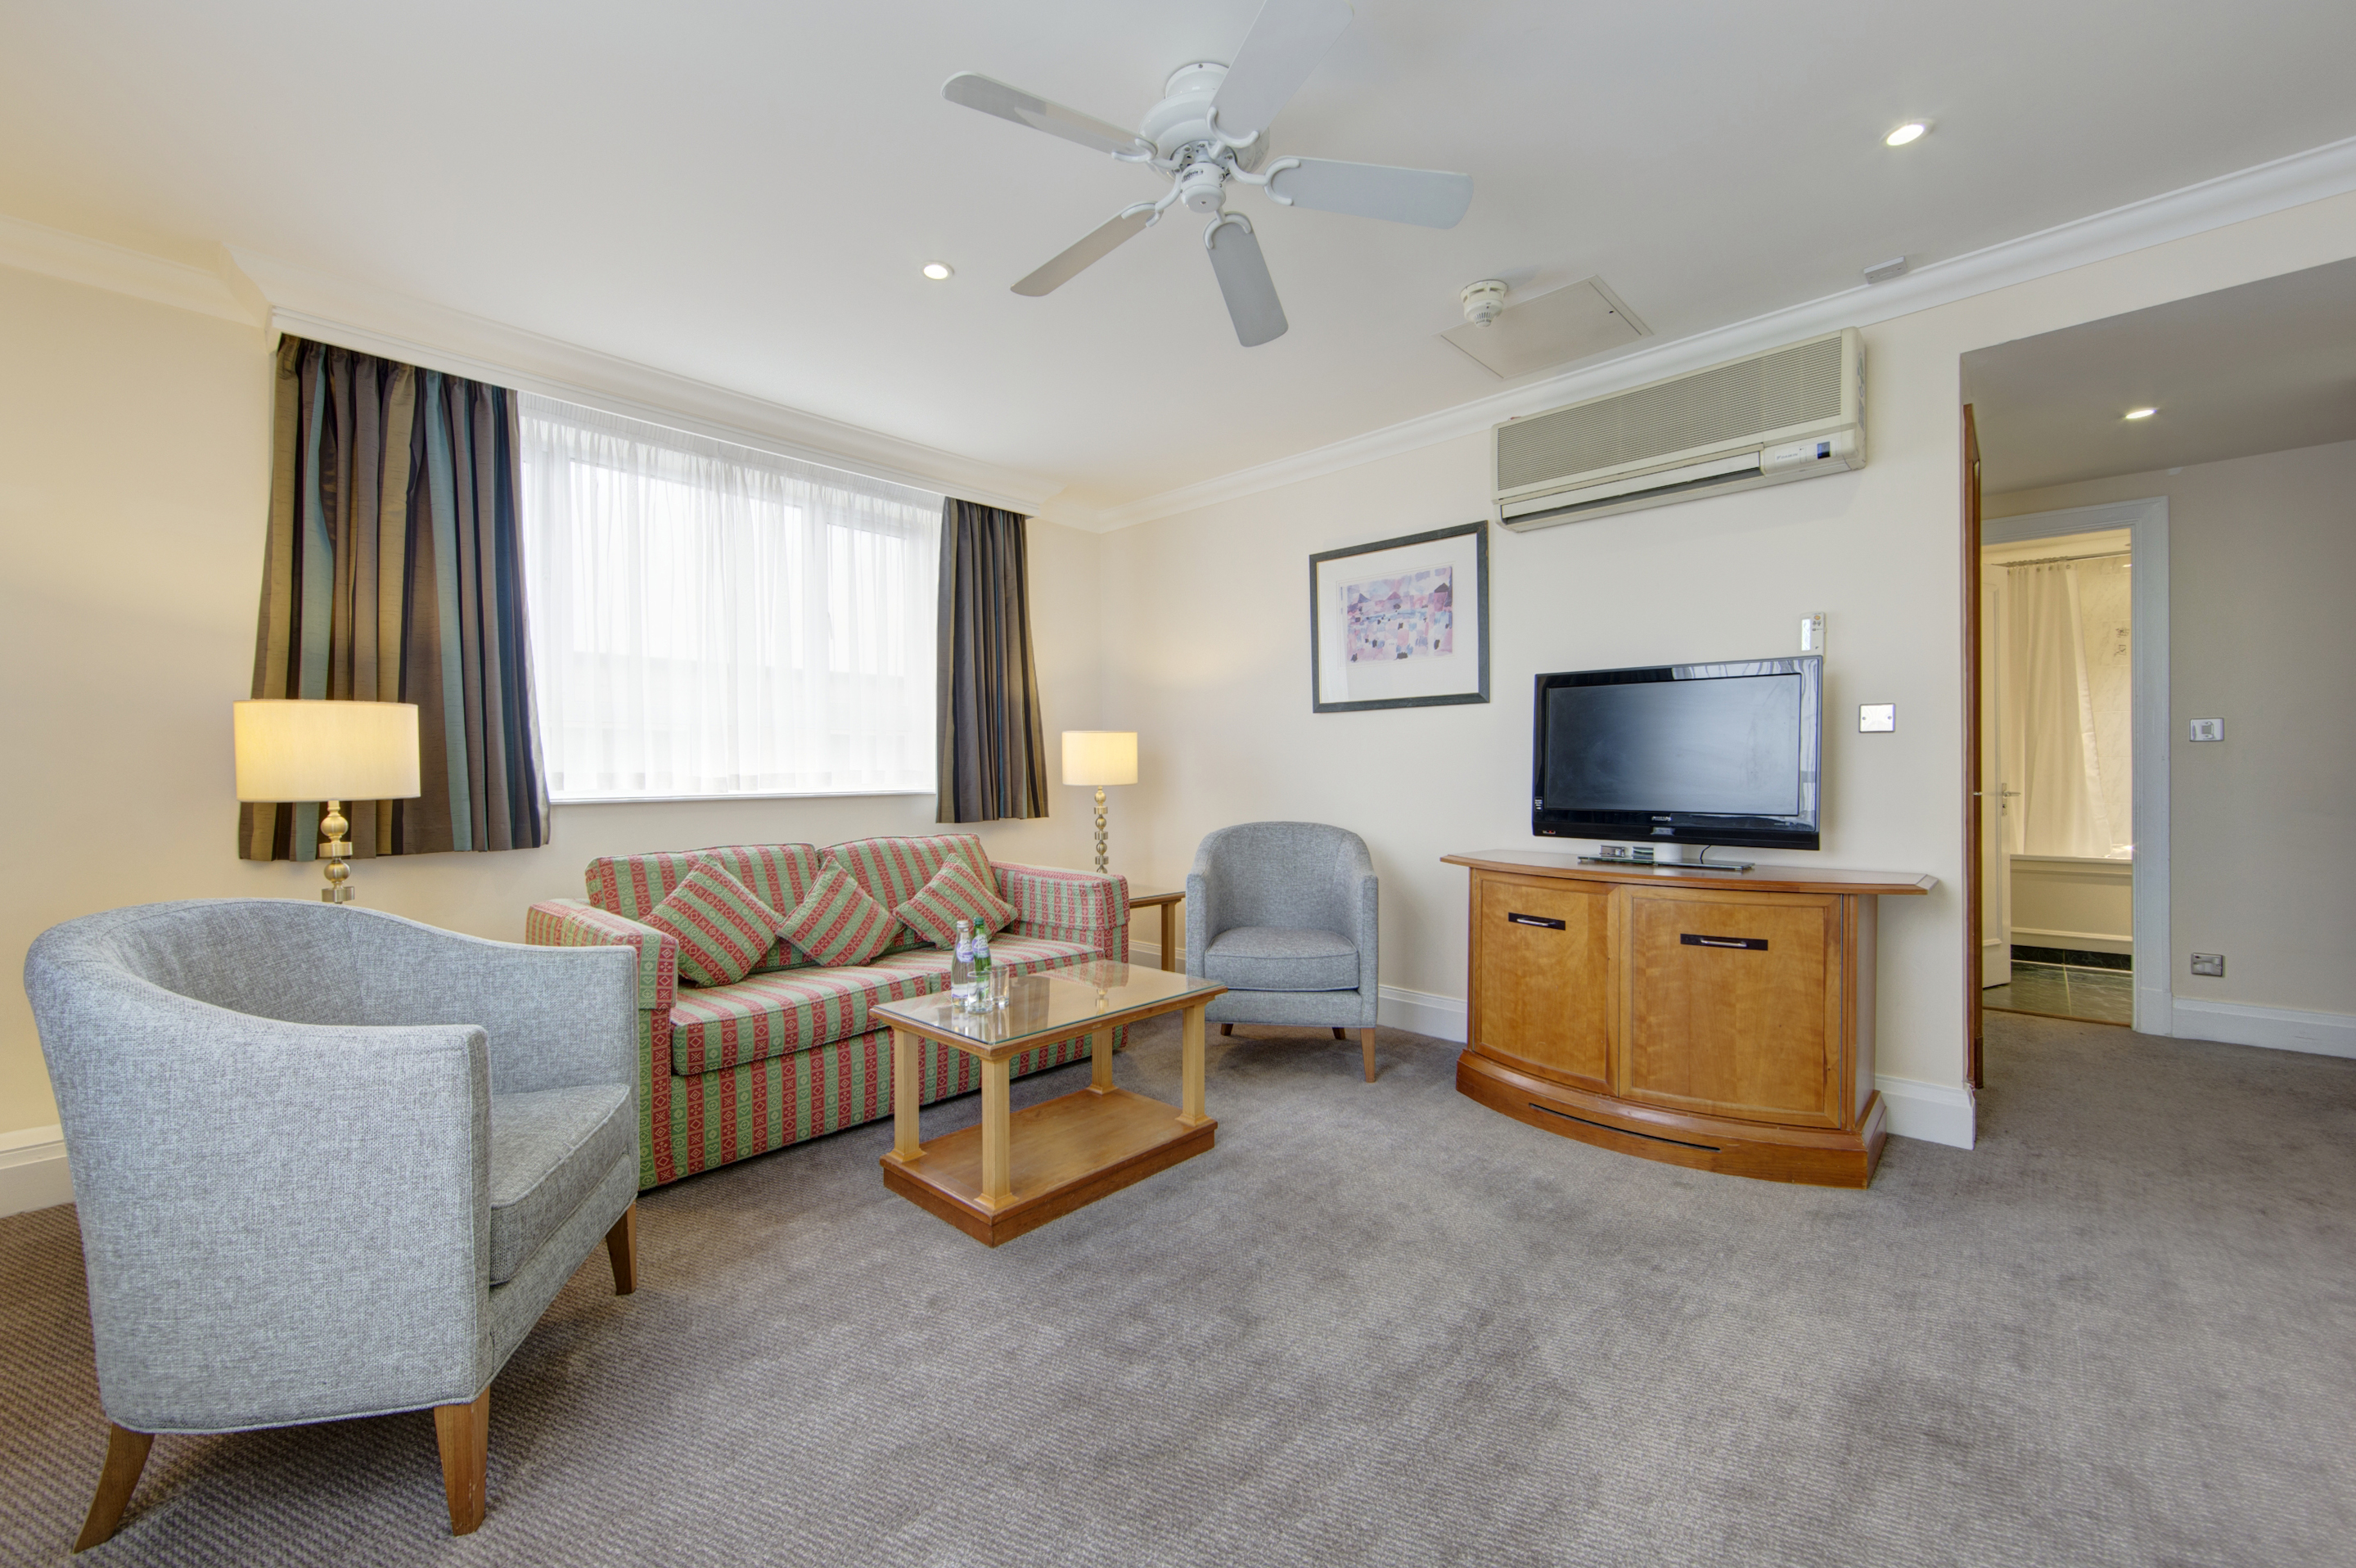 https://www.hotelsbyday.com/_data/default-hotel_image/0/4367/family-room-lounge.jpg